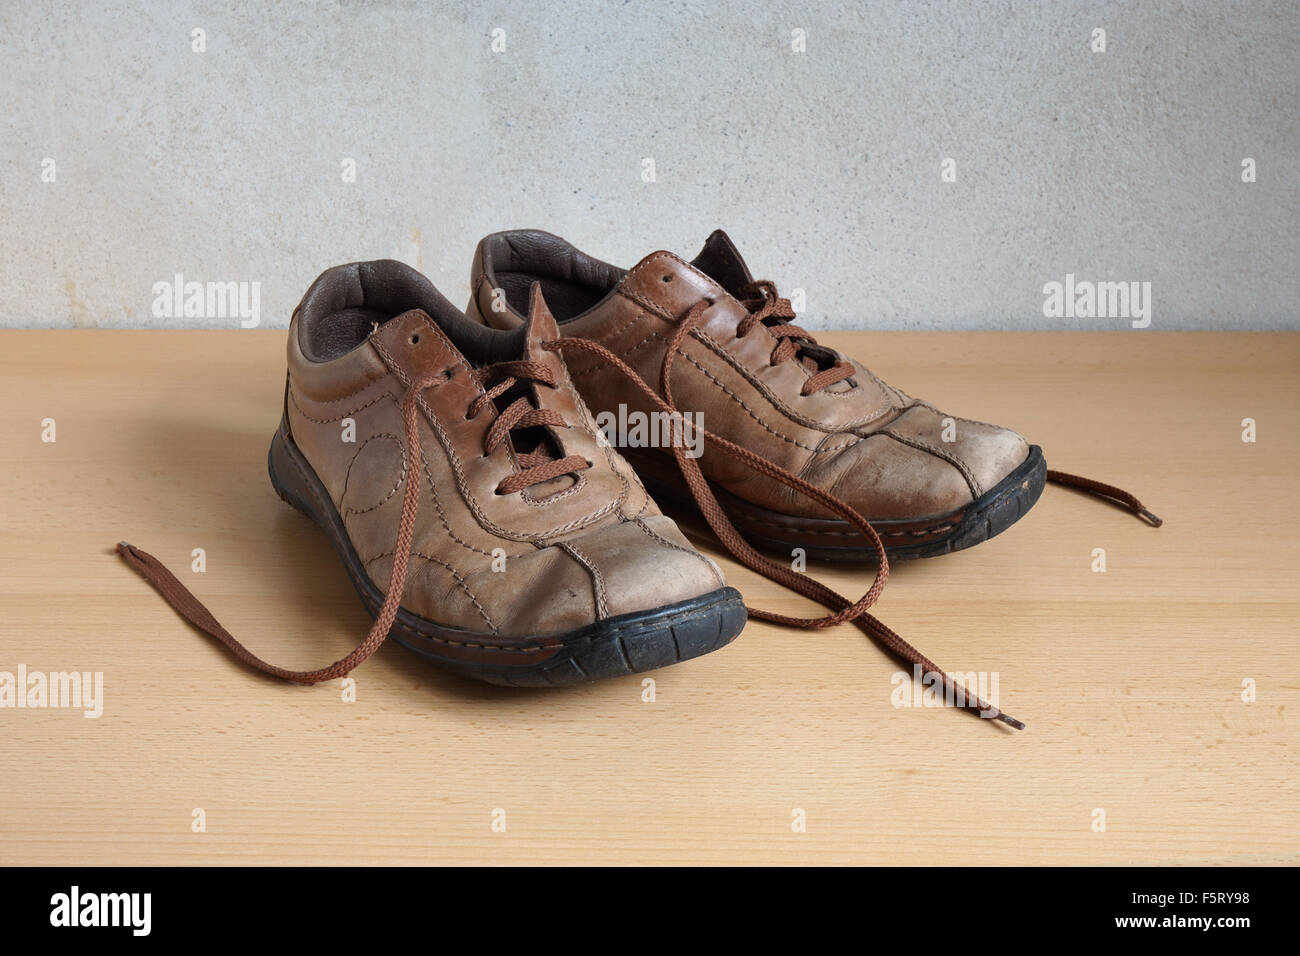 old worn out shoes - Stock Image